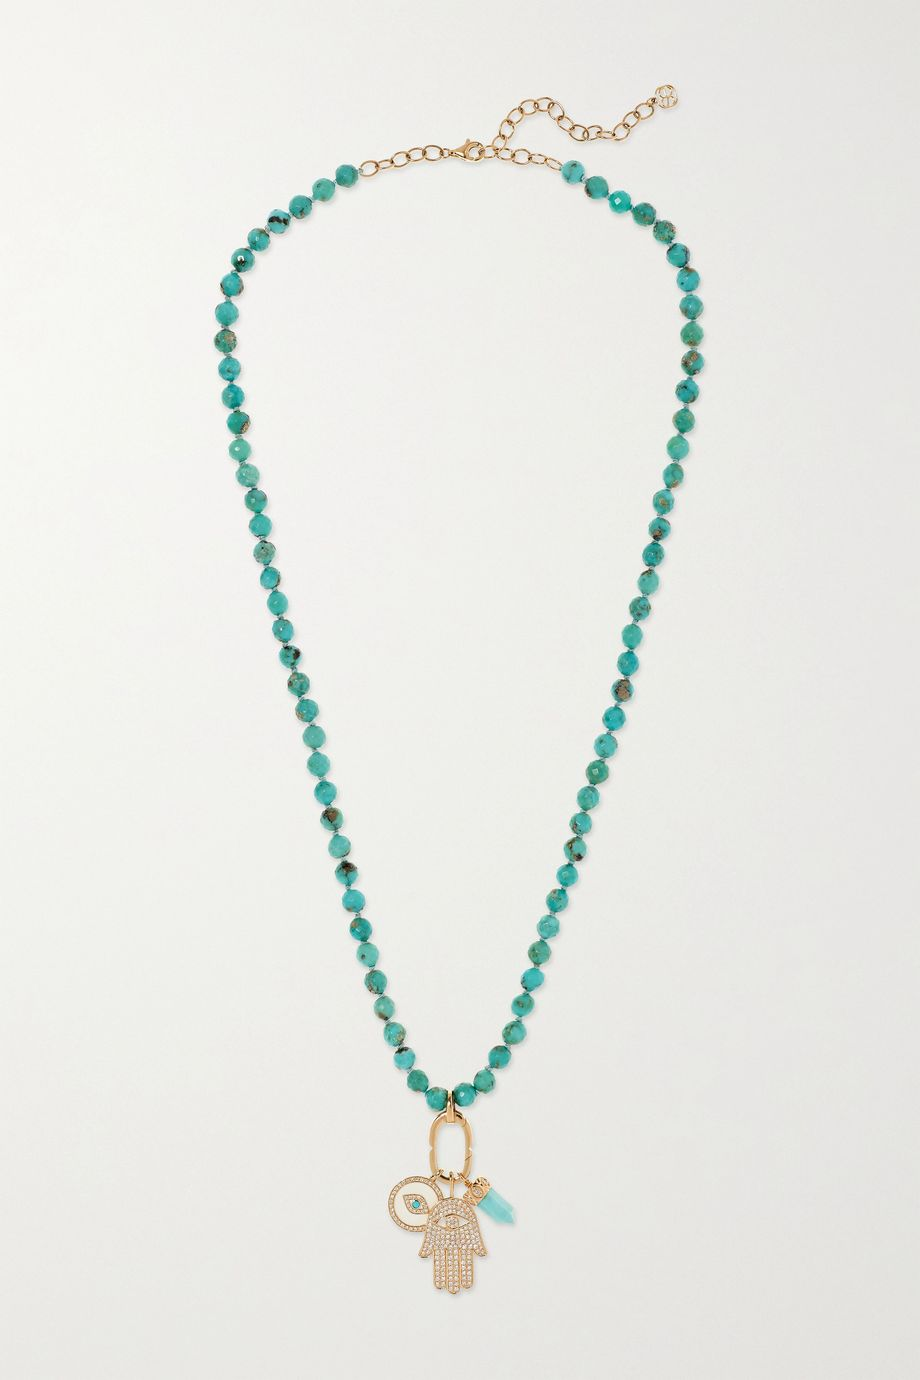 Sydney Evan 14-karat gold, turquoise and diamond necklace